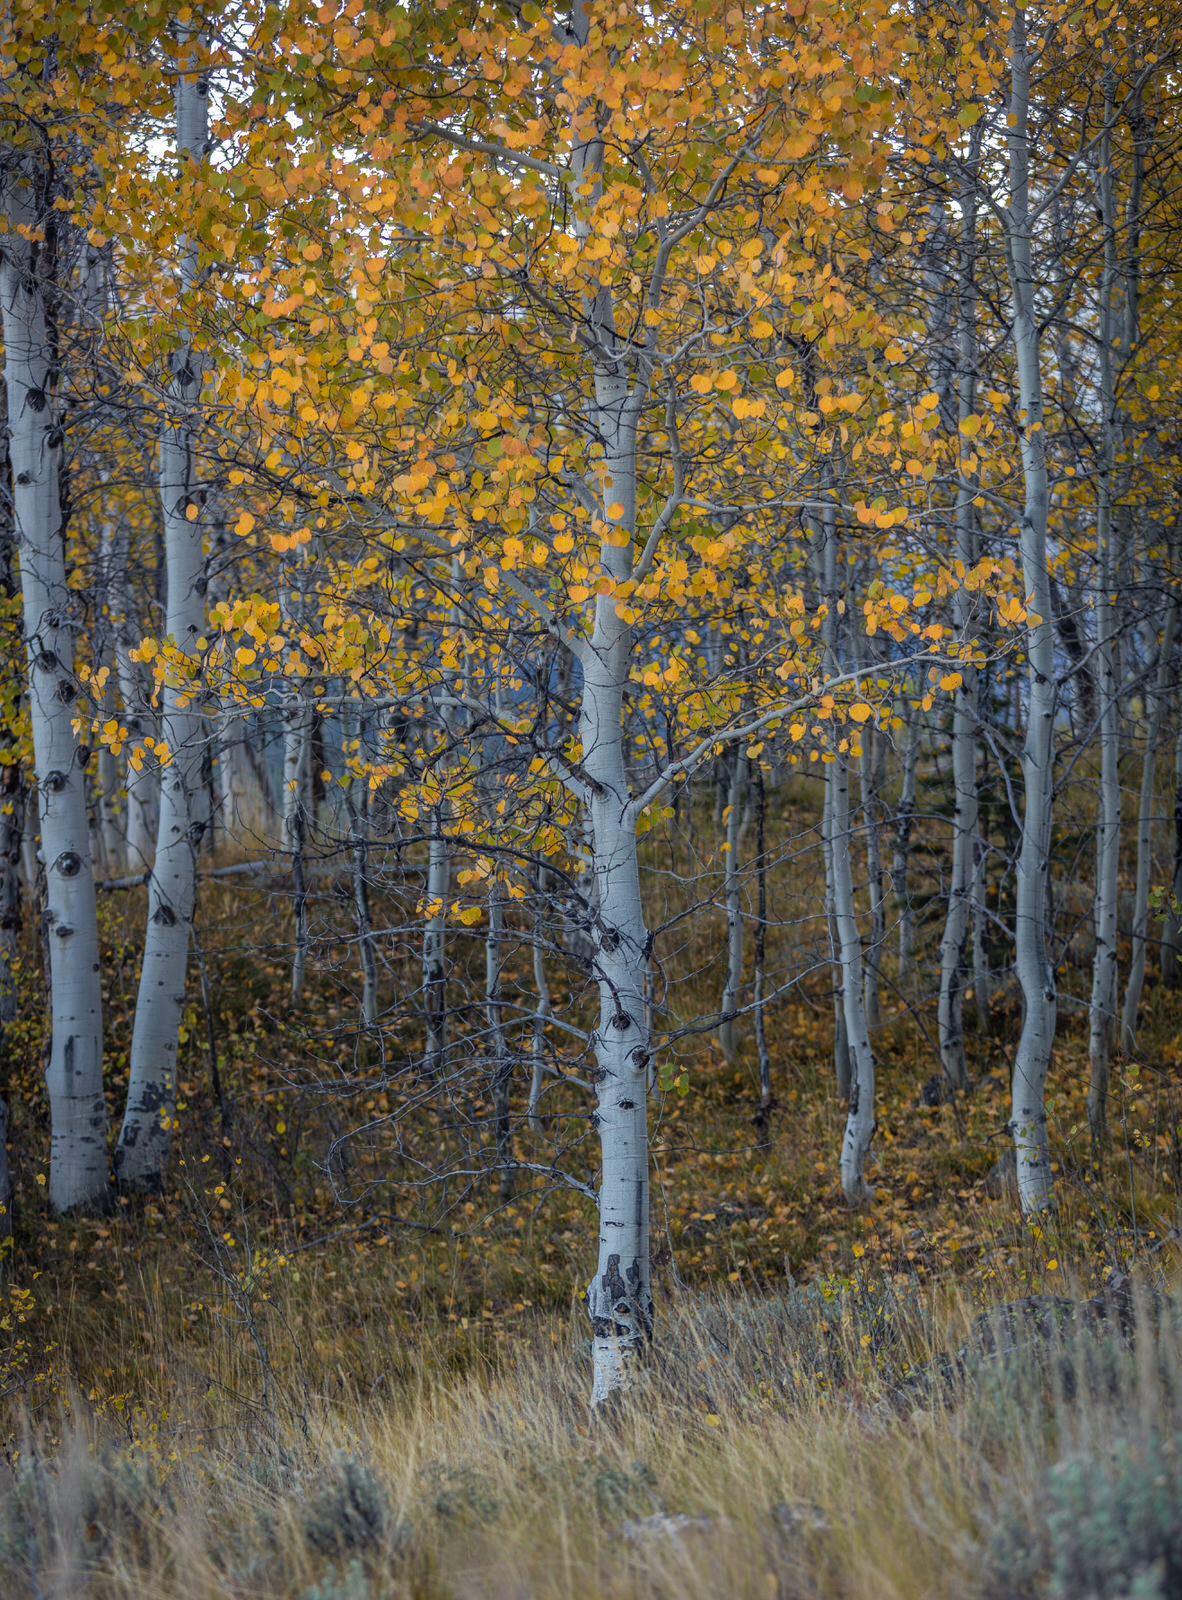 Aspen stand near Little Redfish Lake